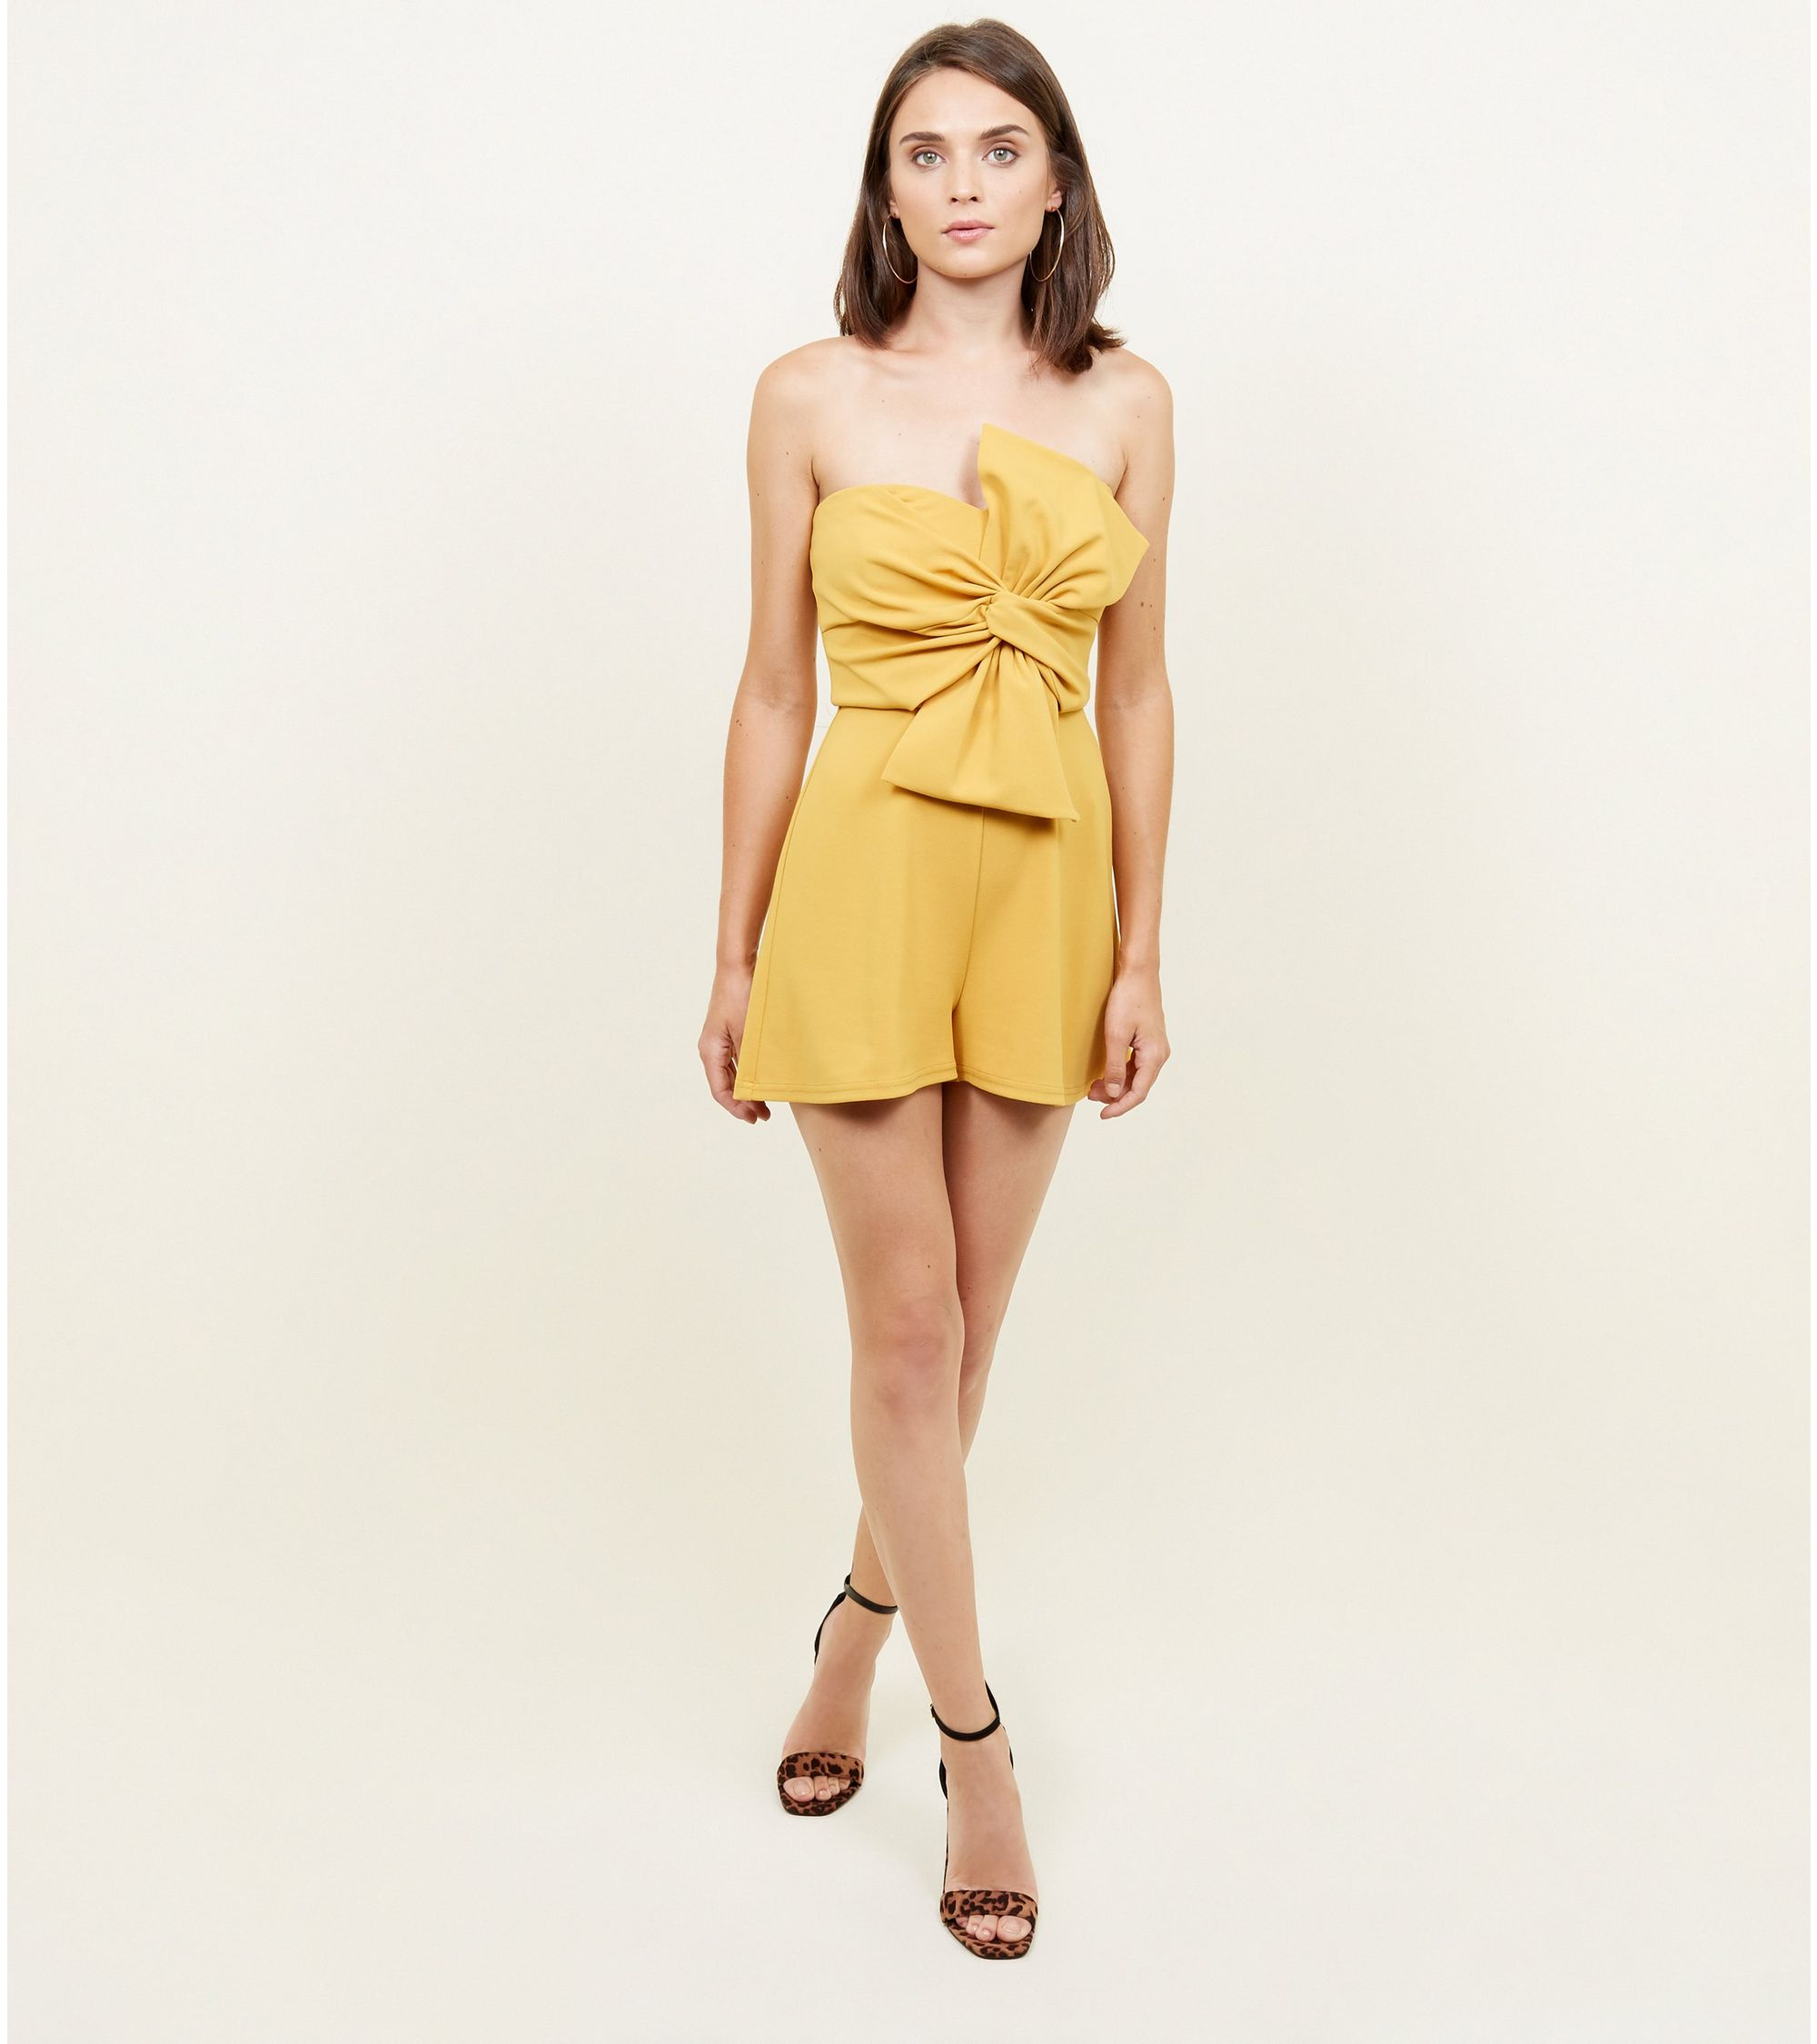 f7c18b69c6 New Look Yellow Bow Front Strapless Party Playsuit at £24.99